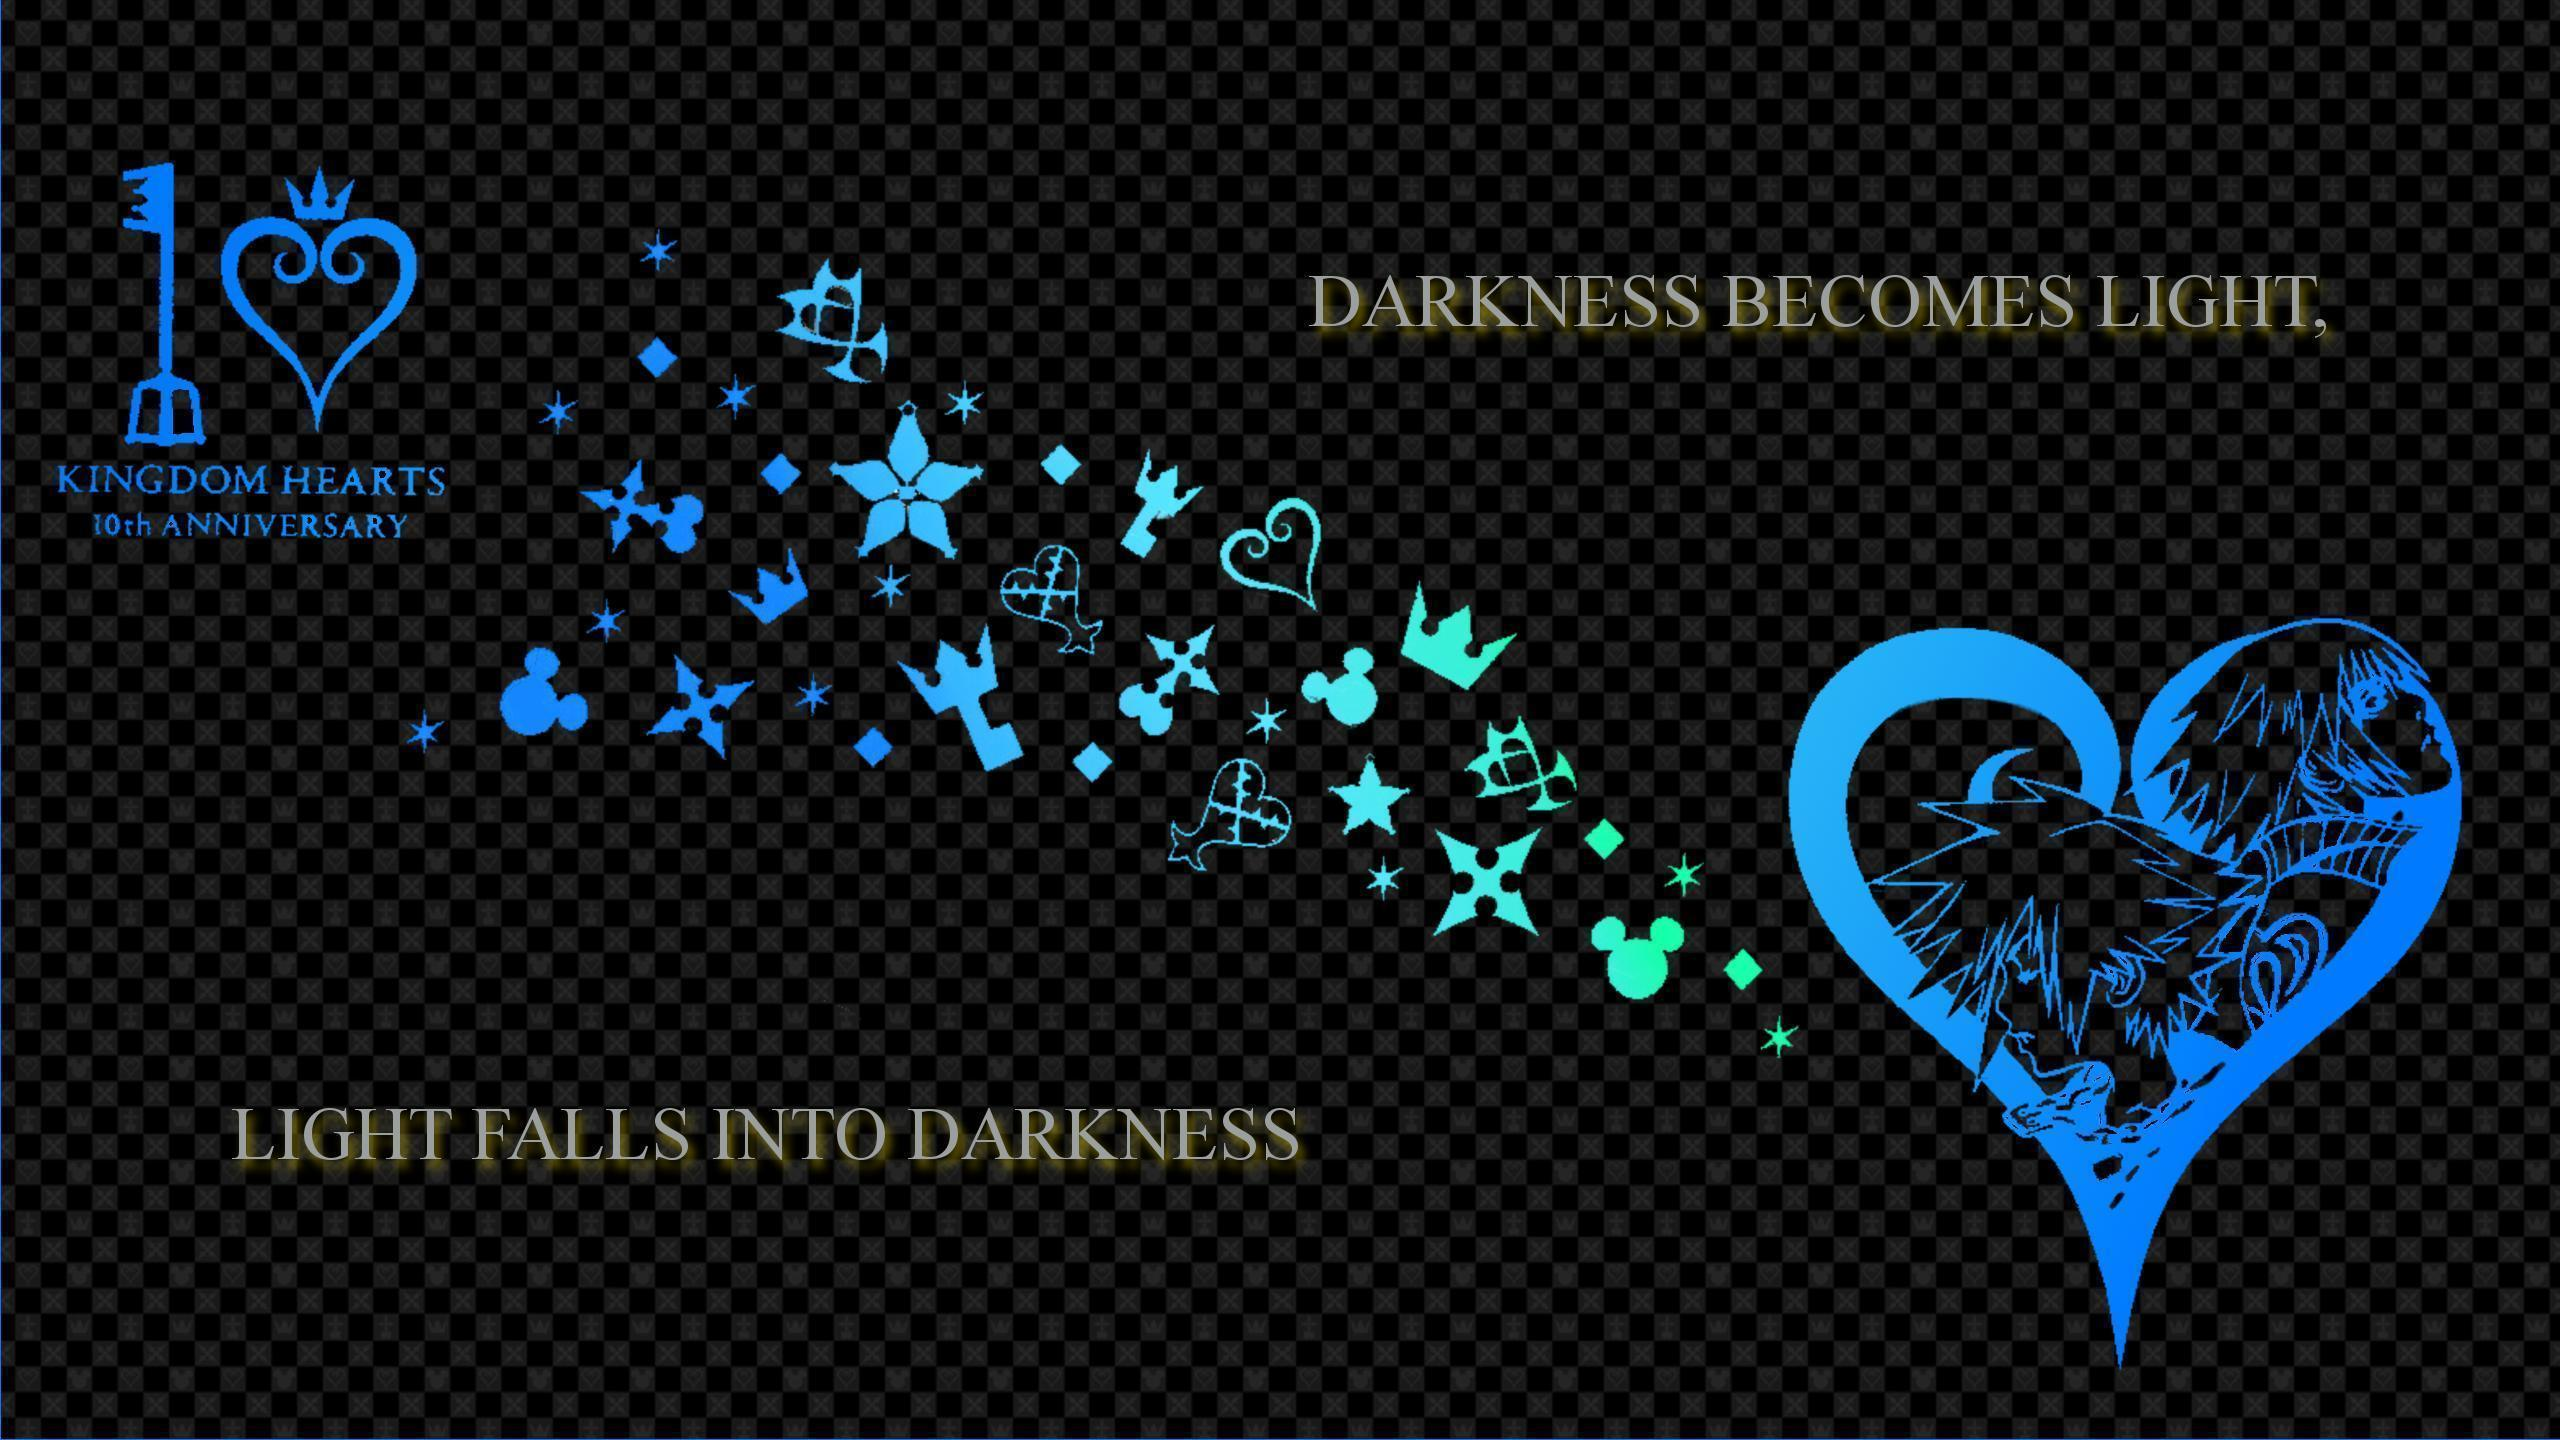 kingdom hearts background - photo #2